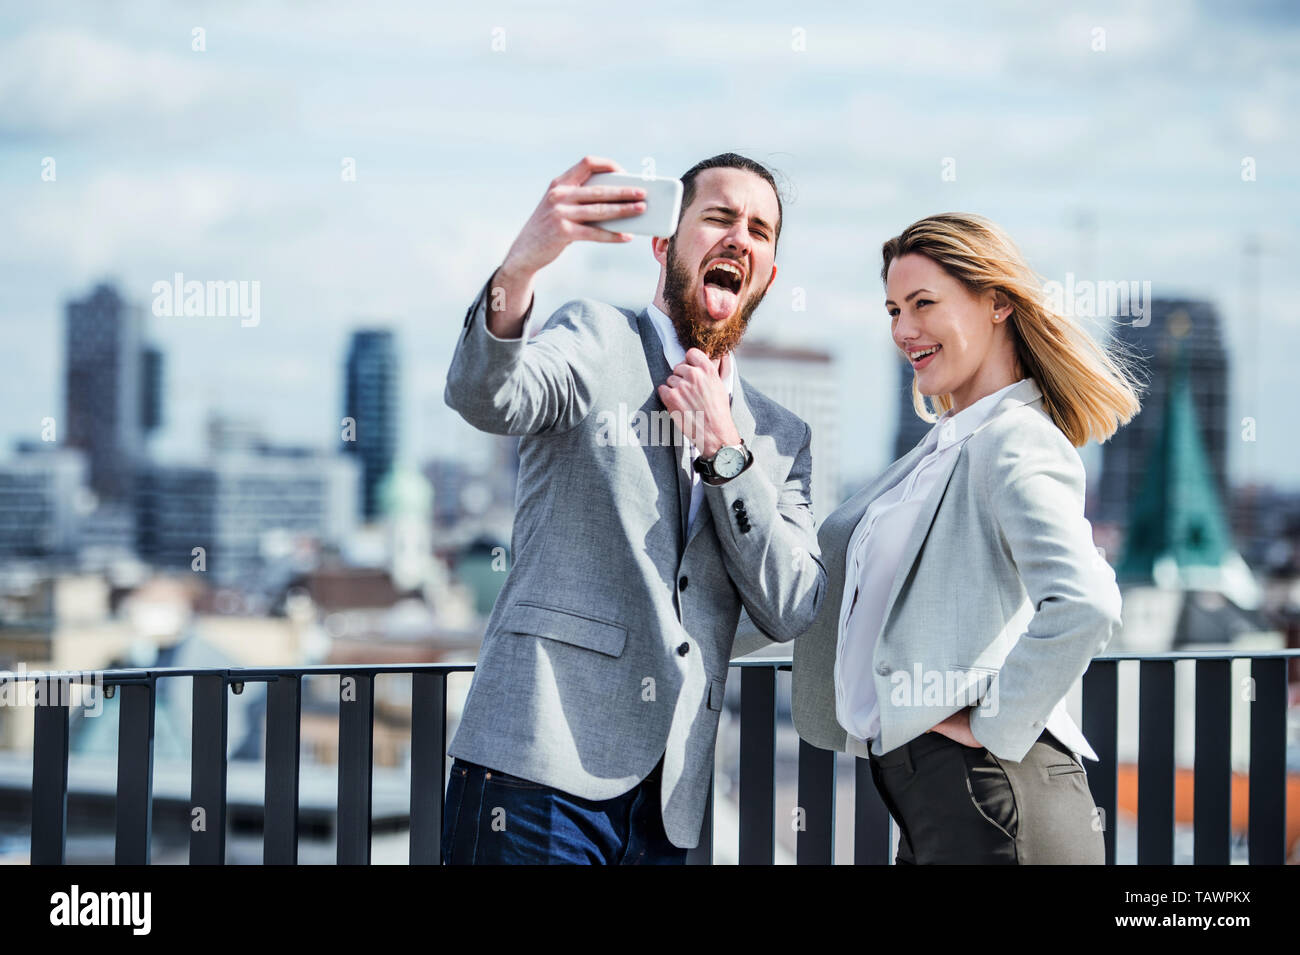 Two young business people with smartphone standing on a terrace, taking selfie. - Stock Image